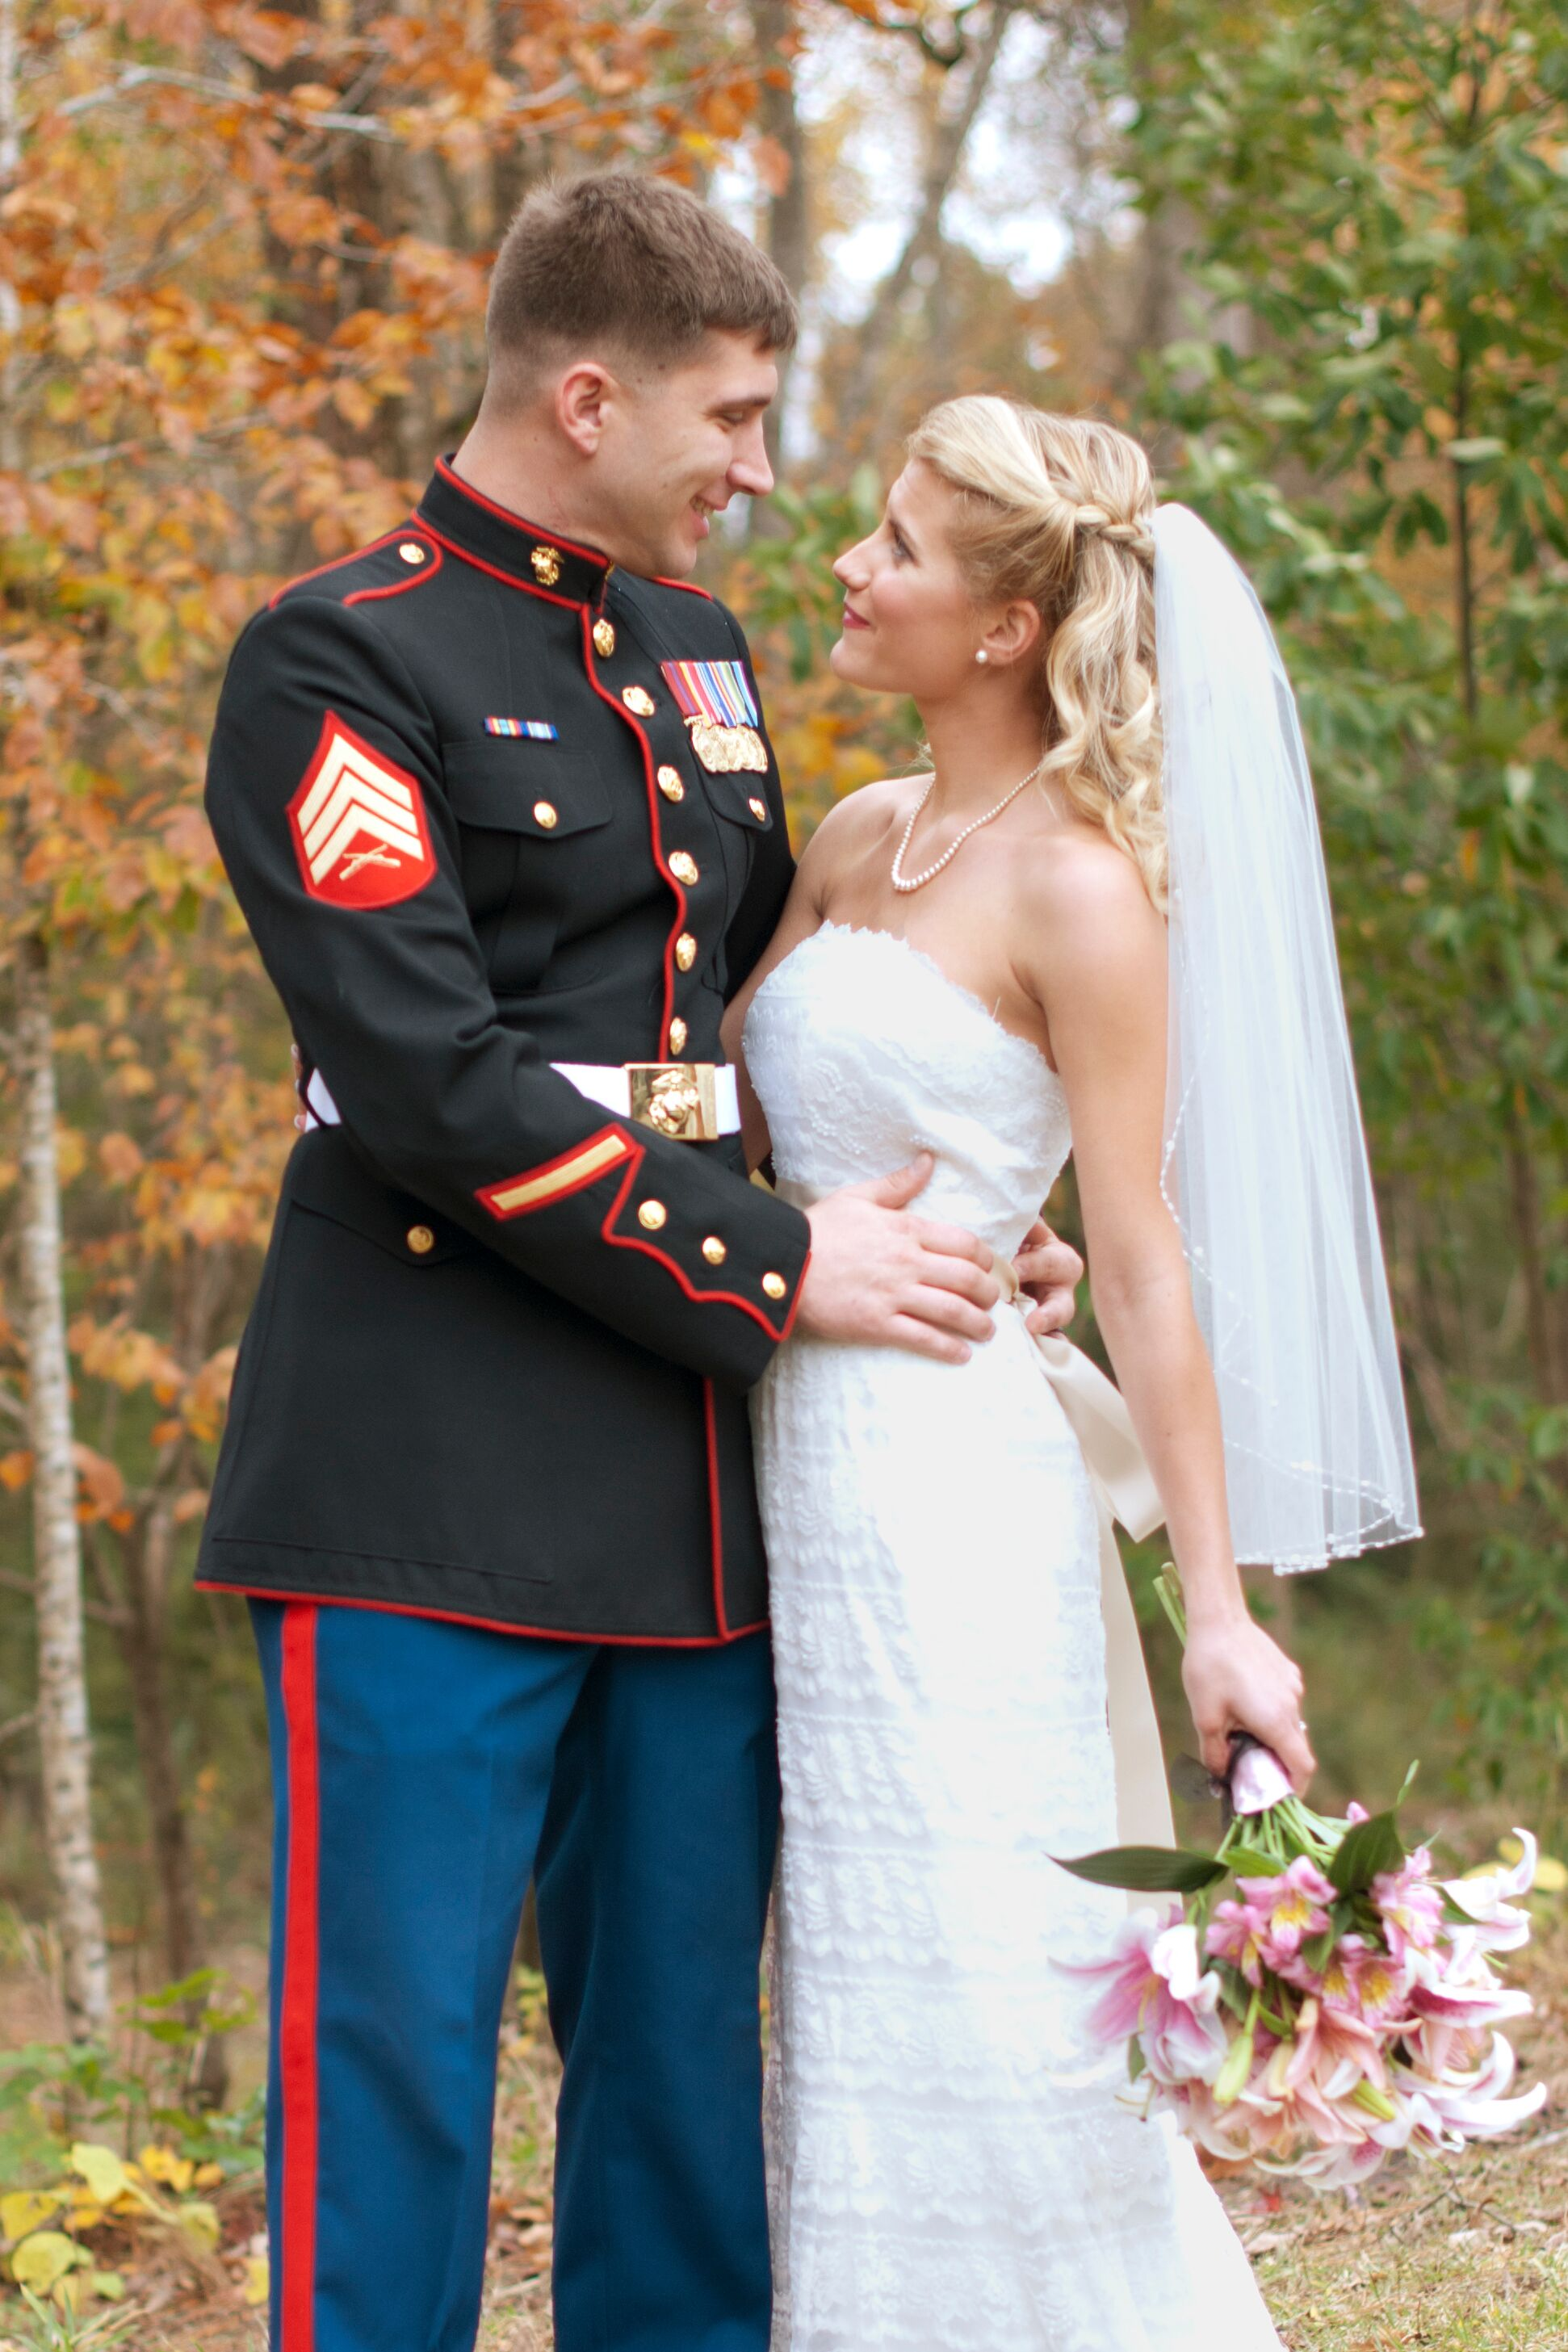 Dating a marine advice for the bride. larry stylinson fanfic courtship dating lyrics.